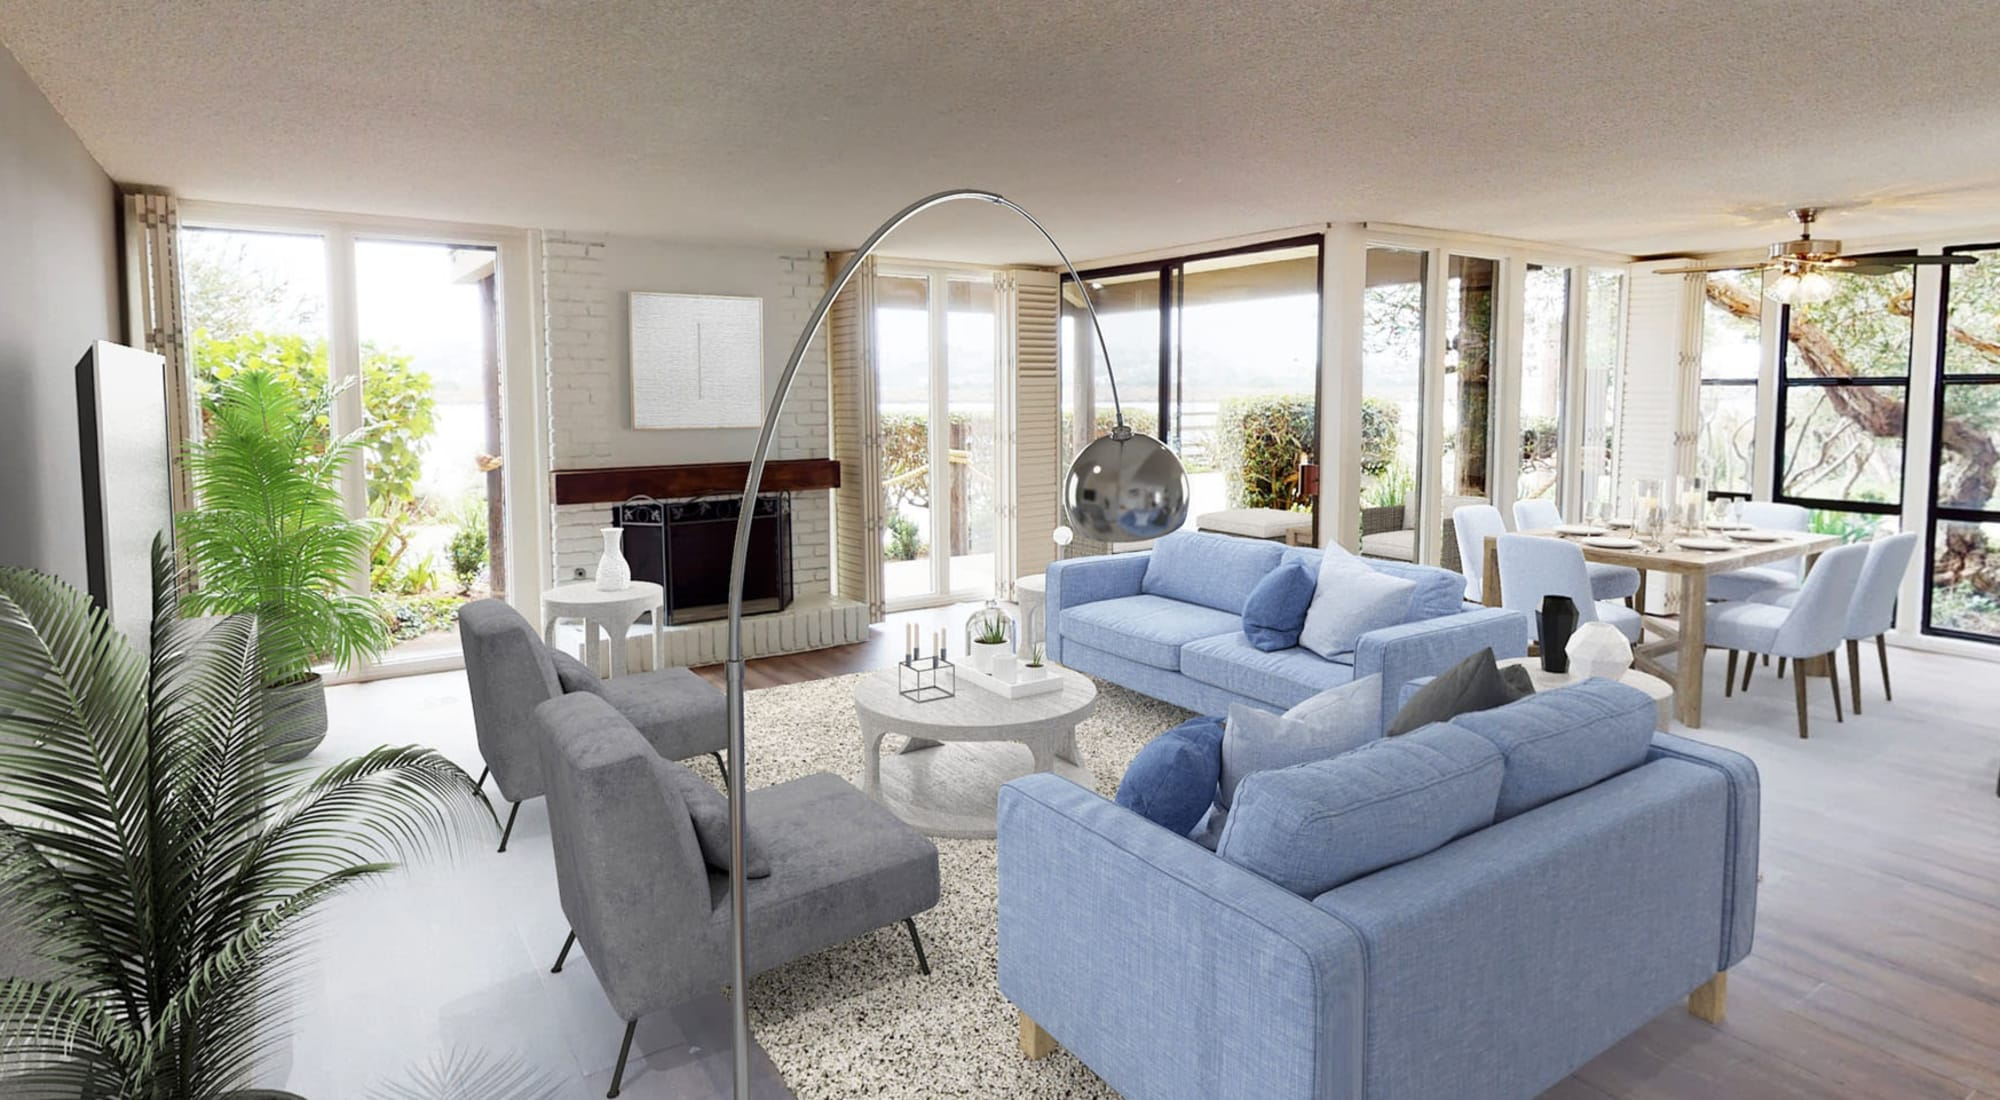 Modern furnishings and a fireplace in a model apartment at Primary bedroom with large bay windows and a walk-in closet in a model home at Mariners Village in Marina del Rey, California